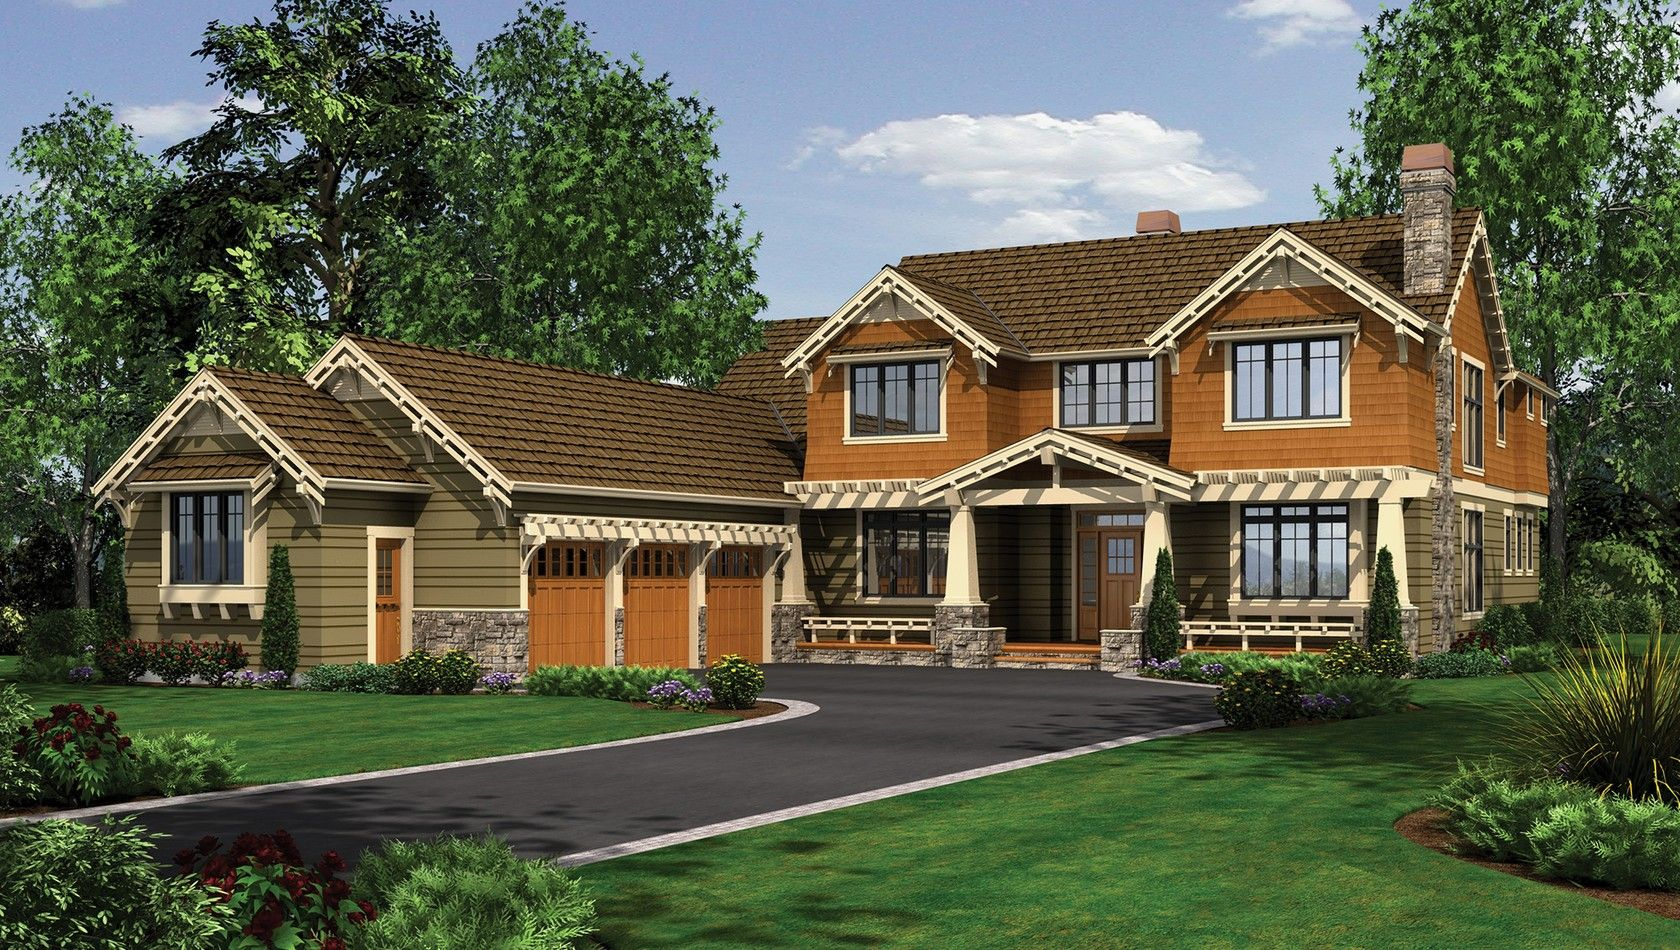 House Front Rendering My Dream